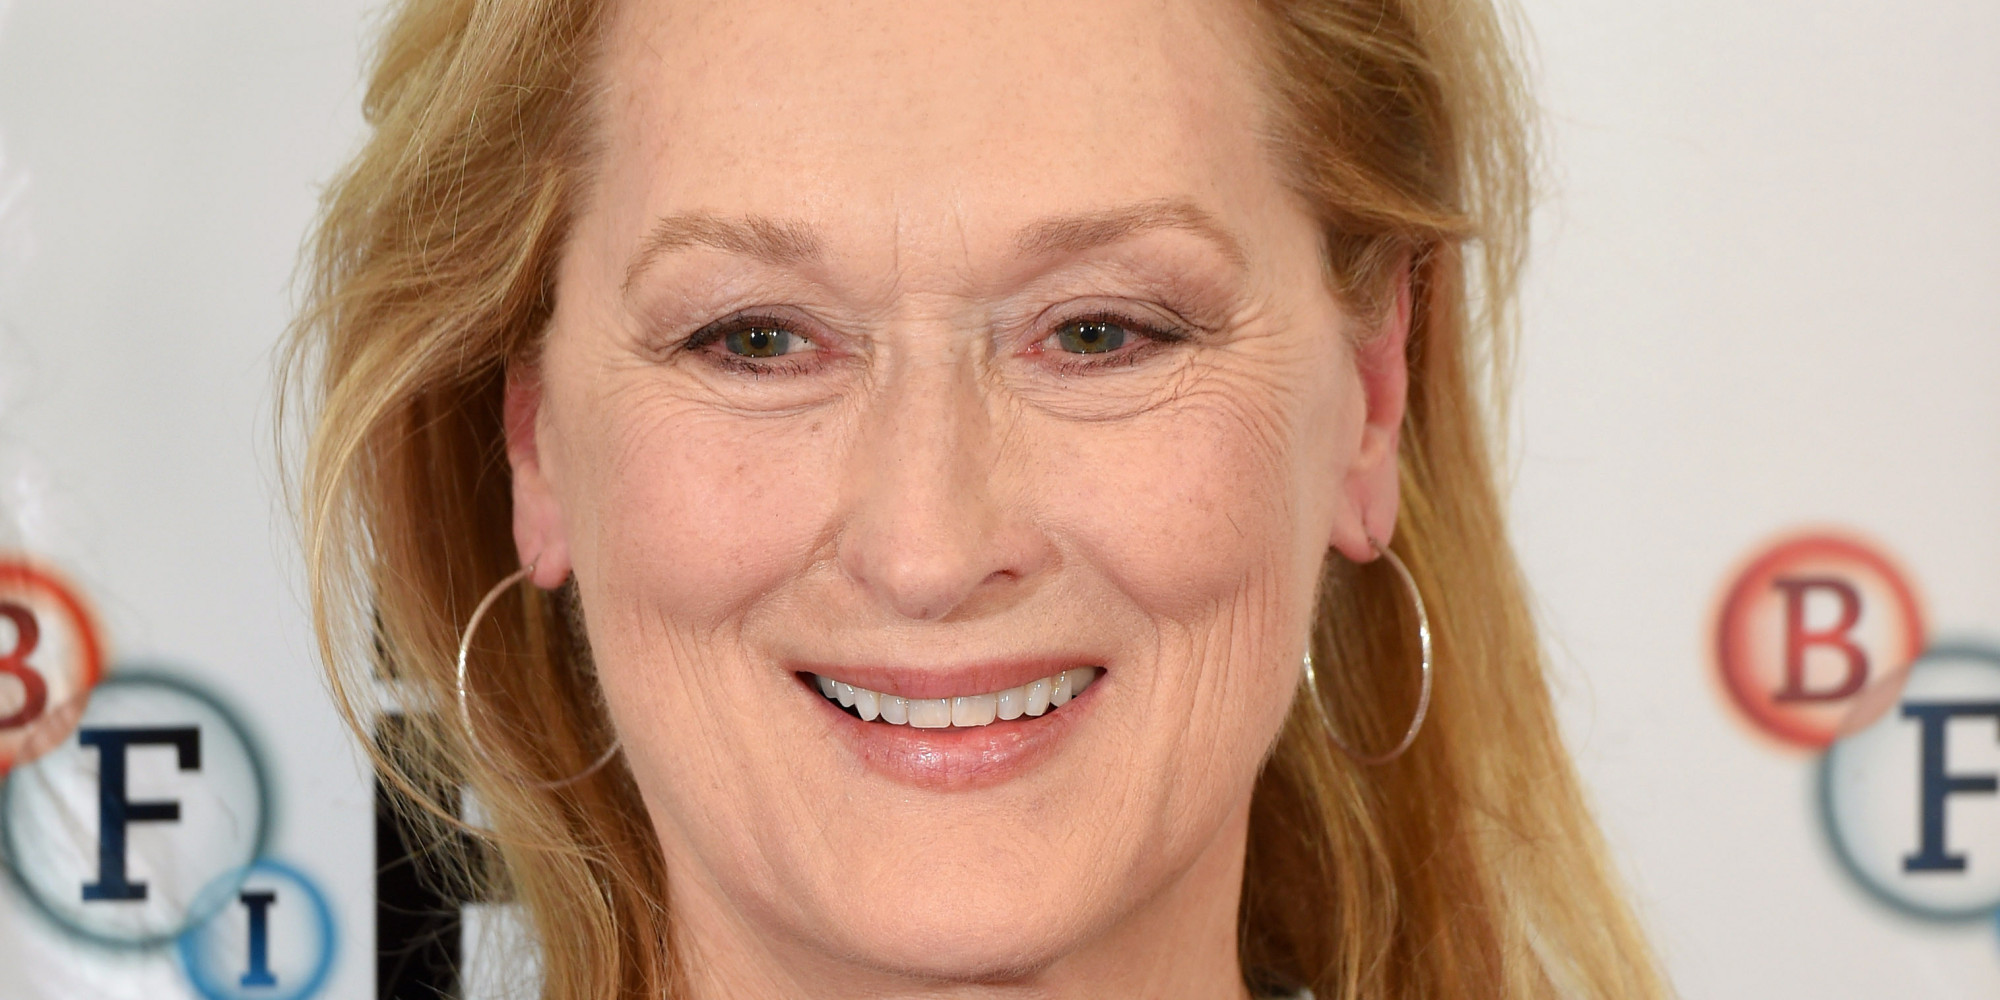 meryl streep daughtermeryl streep films, meryl streep trump, meryl streep young, meryl streep movies, meryl streep oscar, meryl streep speech, meryl streep interview, meryl streep oscar 2017, meryl streep 2016, meryl streep husband, meryl streep daughter, meryl streep oscar 2012, meryl streep twitter, meryl streep gif, meryl streep biography, meryl streep family, meryl streep oscar 2016, meryl streep net worth, meryl streep wiki, meryl streep best movies